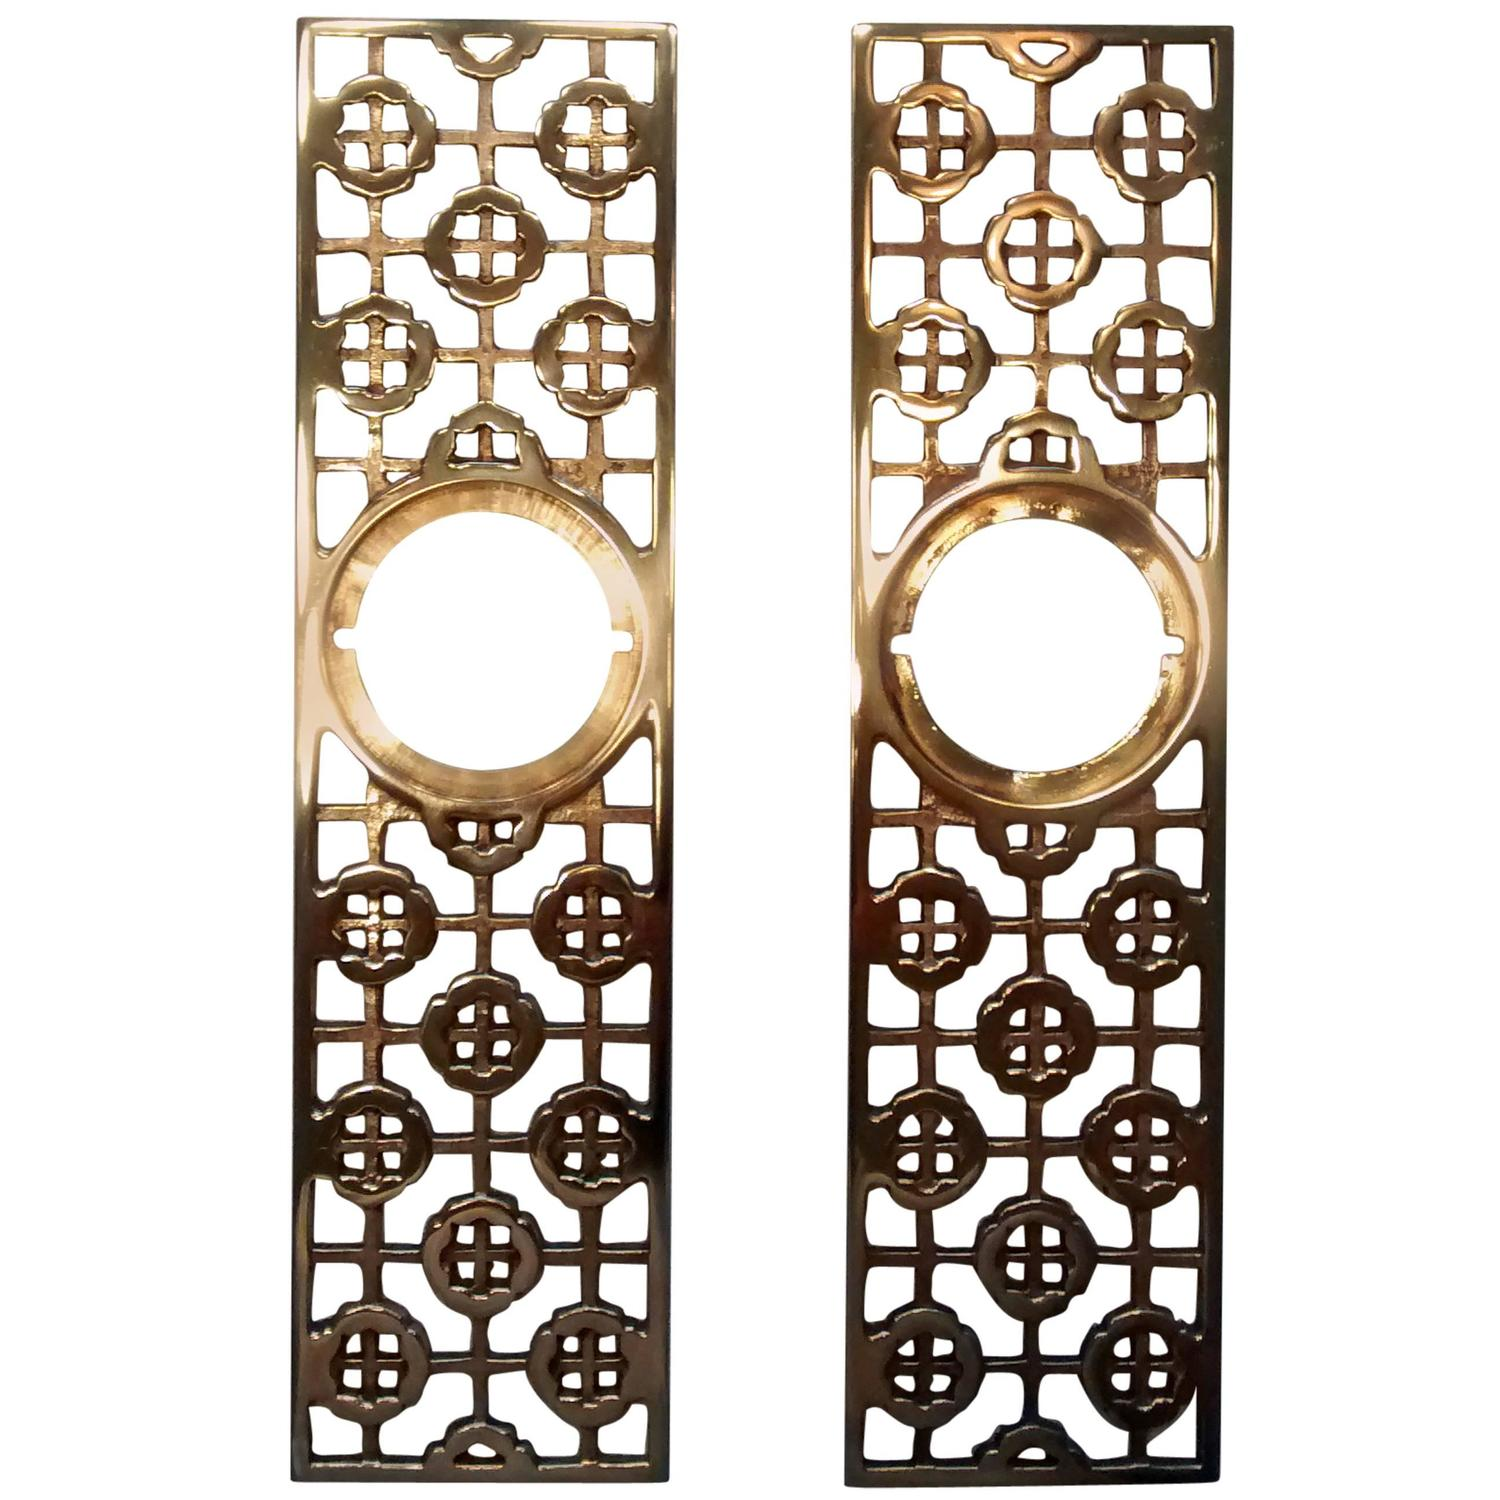 Pair Of Asian Motif Mid Century Modern Door Hardware